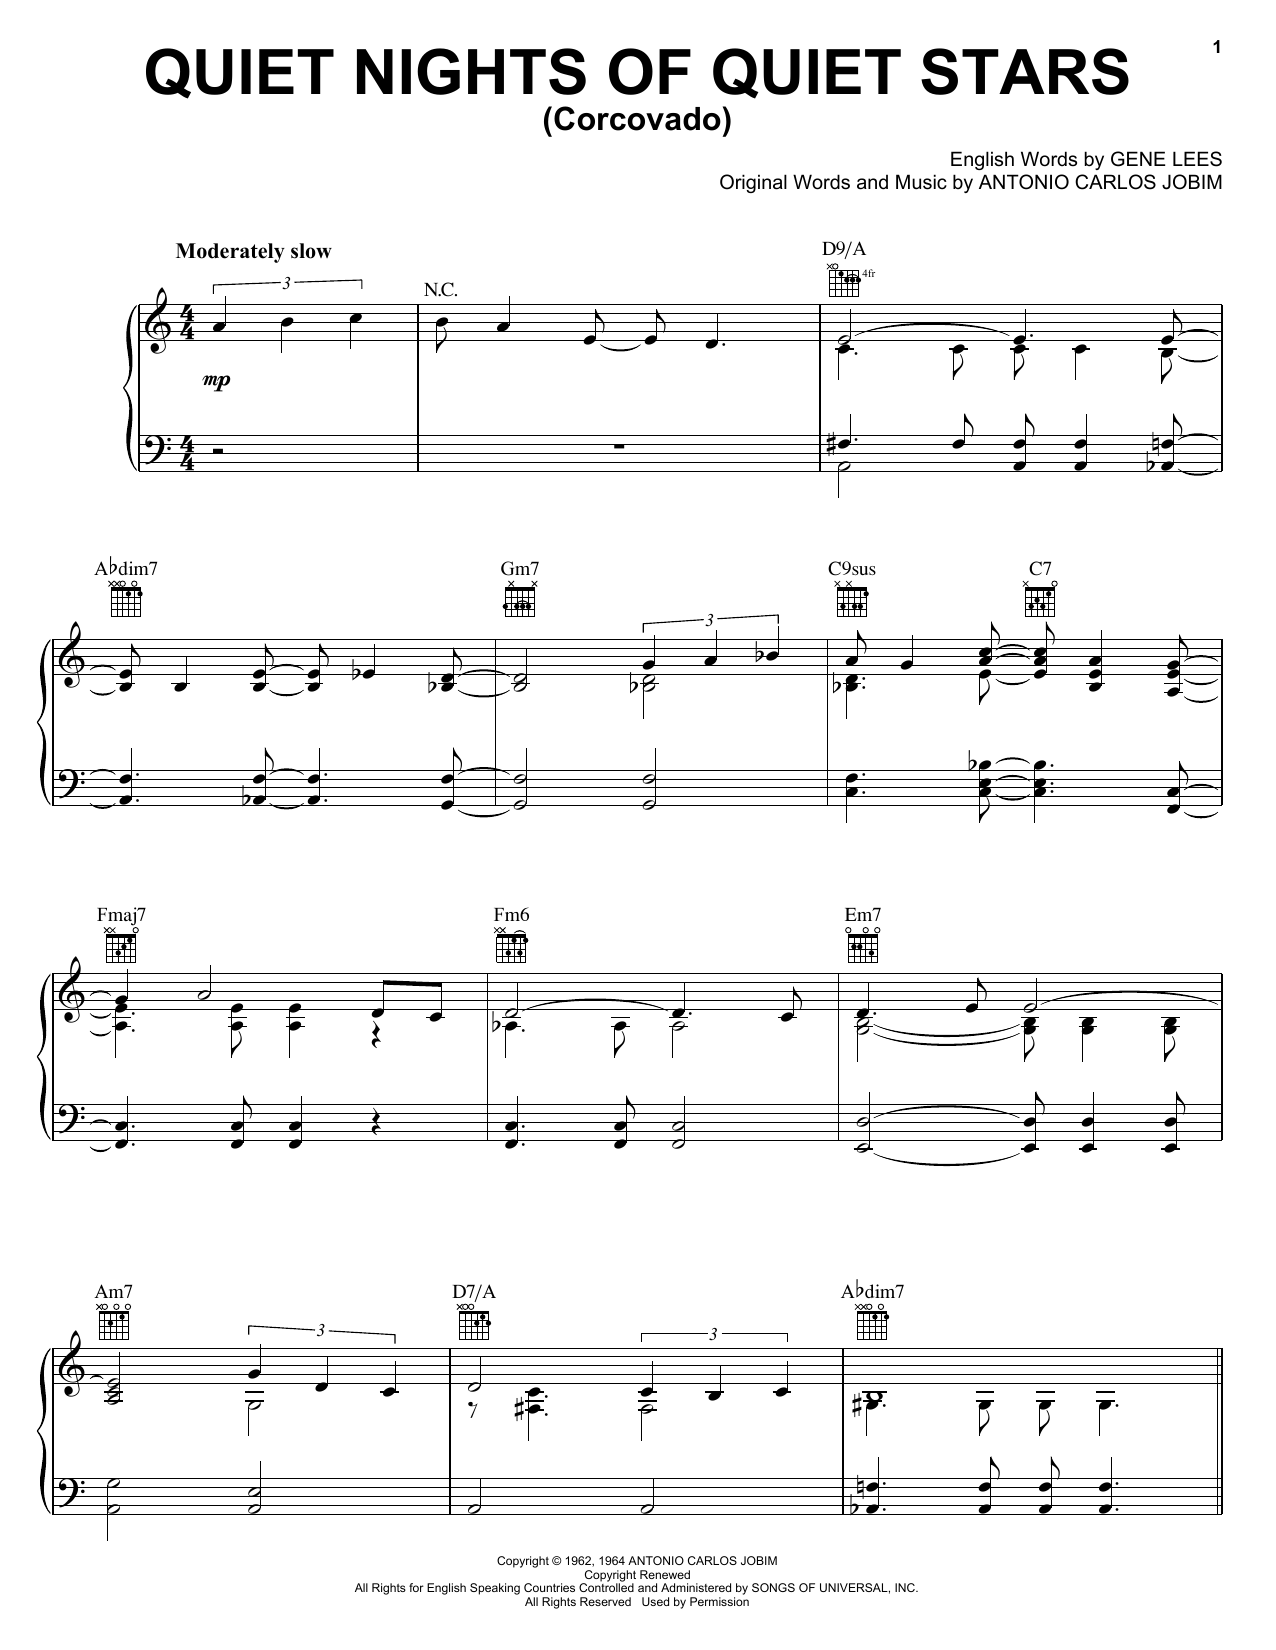 Antonio Carlos Jobim Quiet Nights Of Quiet Stars (Corcovado) sheet music notes and chords. Download Printable PDF.